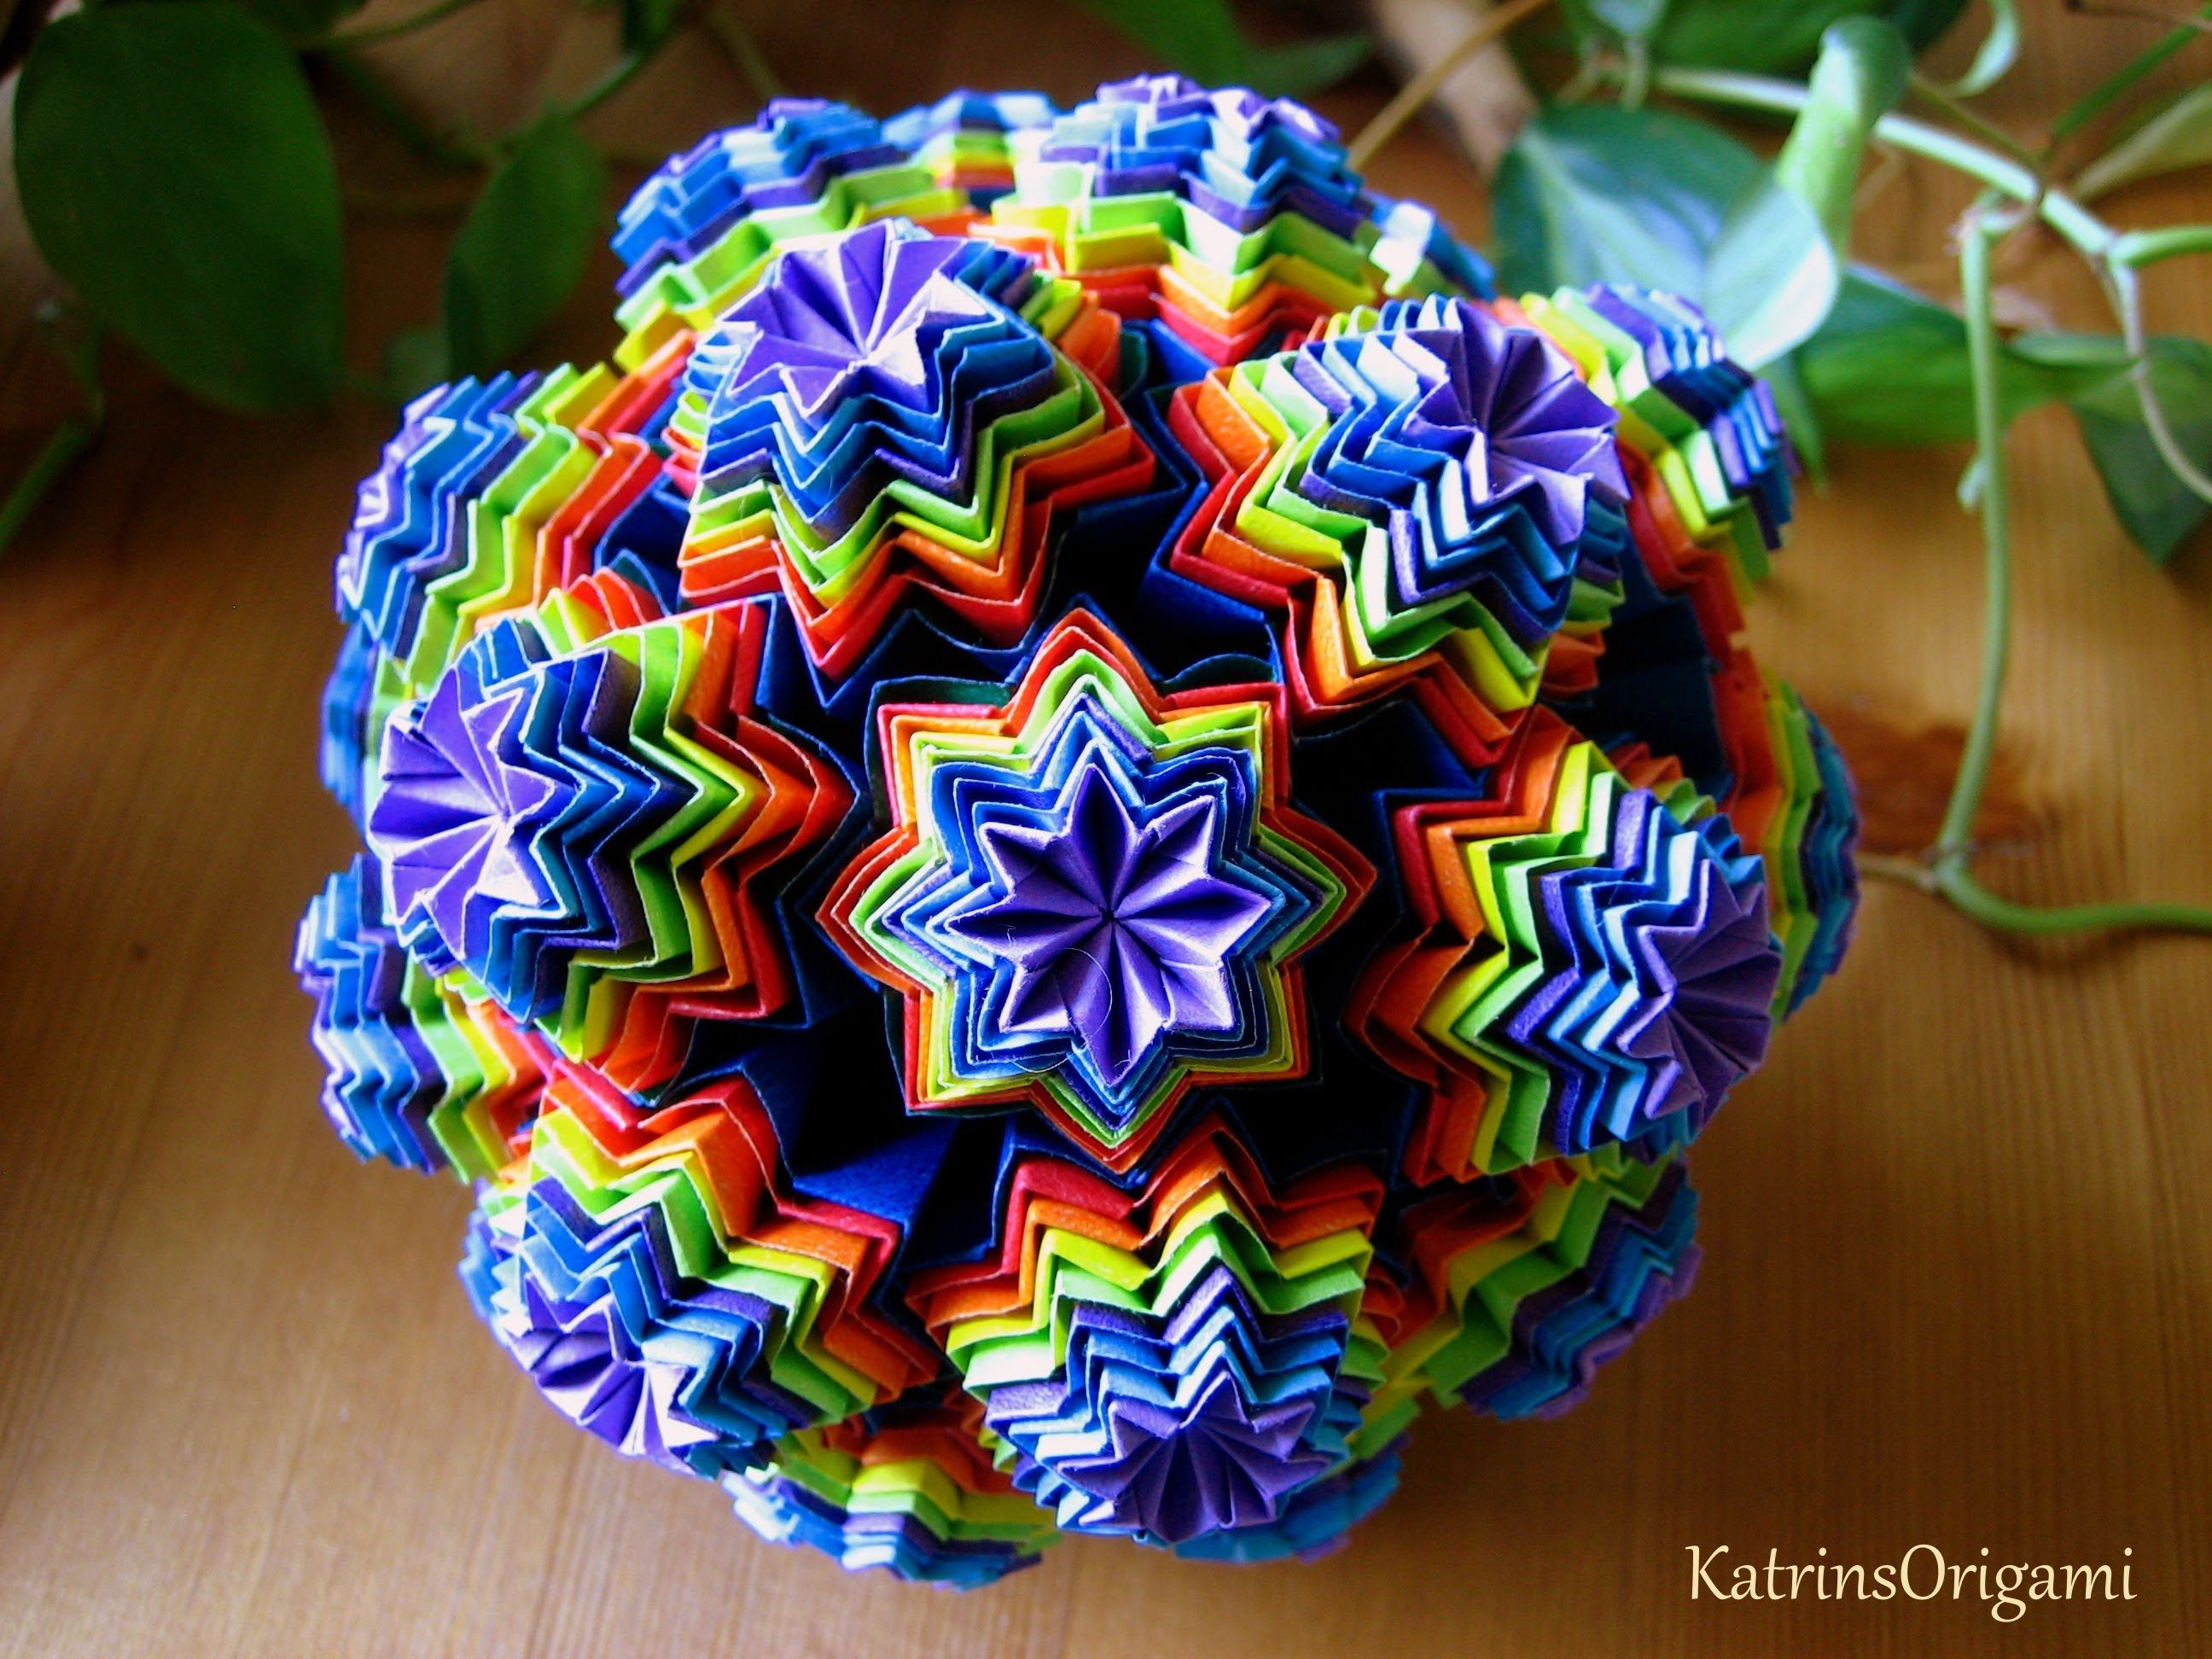 483 best origami kusudama images on pinterest origami paper and origami maniacs venus kusudama includes a video dhlflorist Image collections